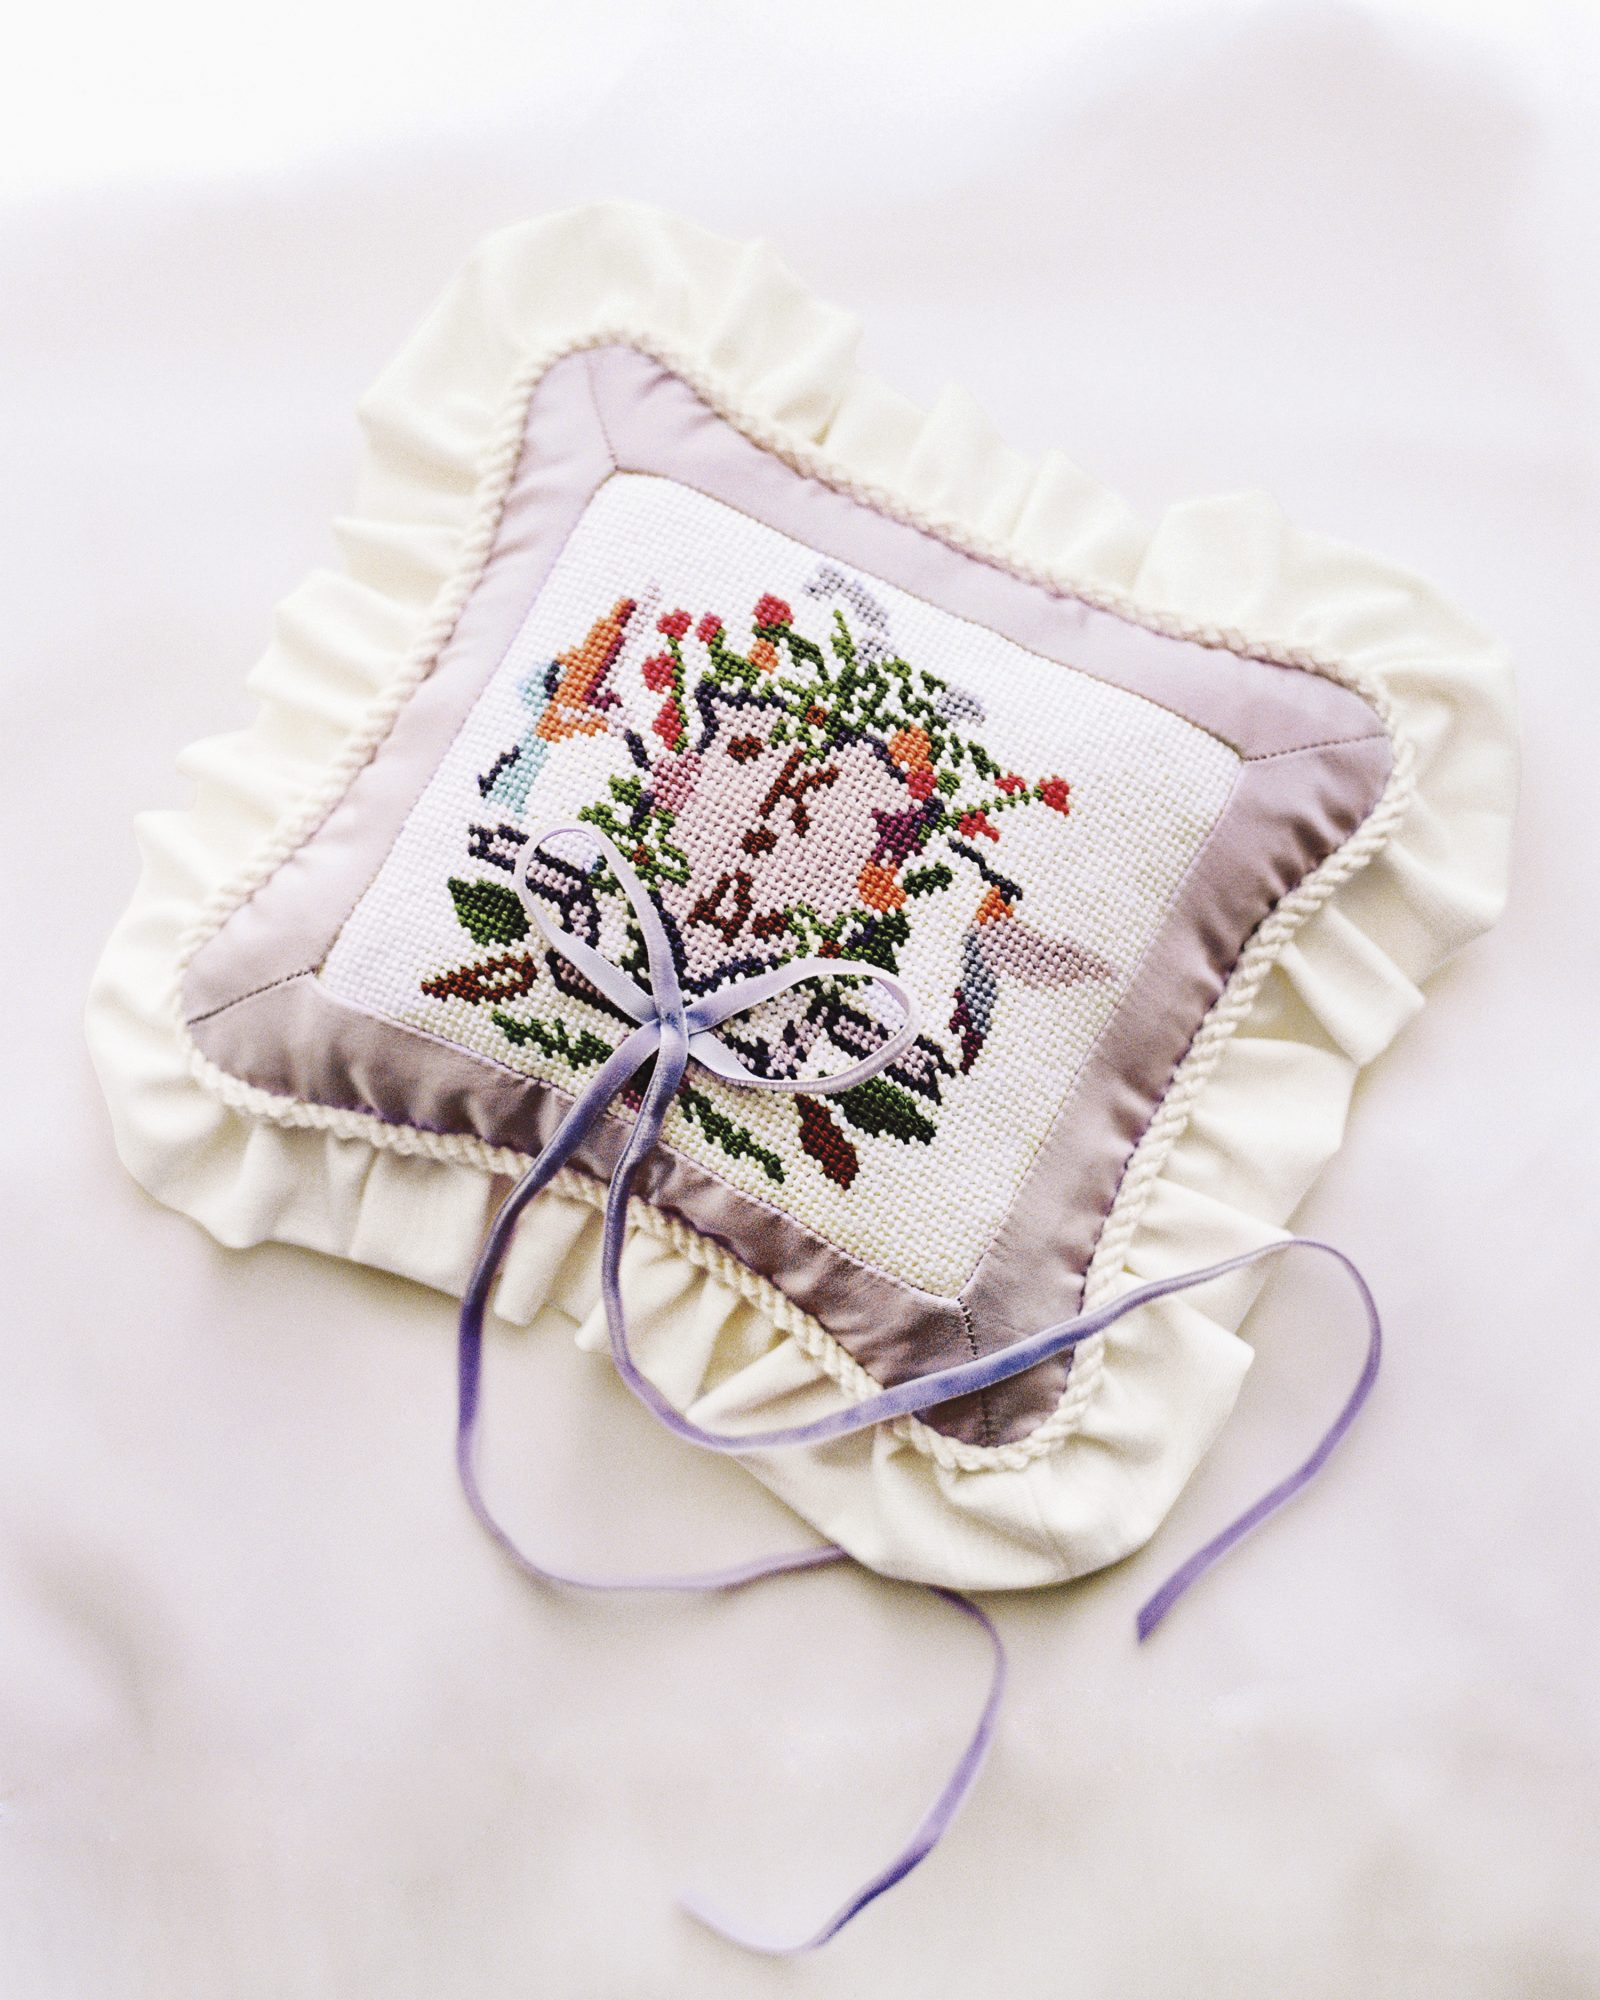 A Needlepointed Pillow